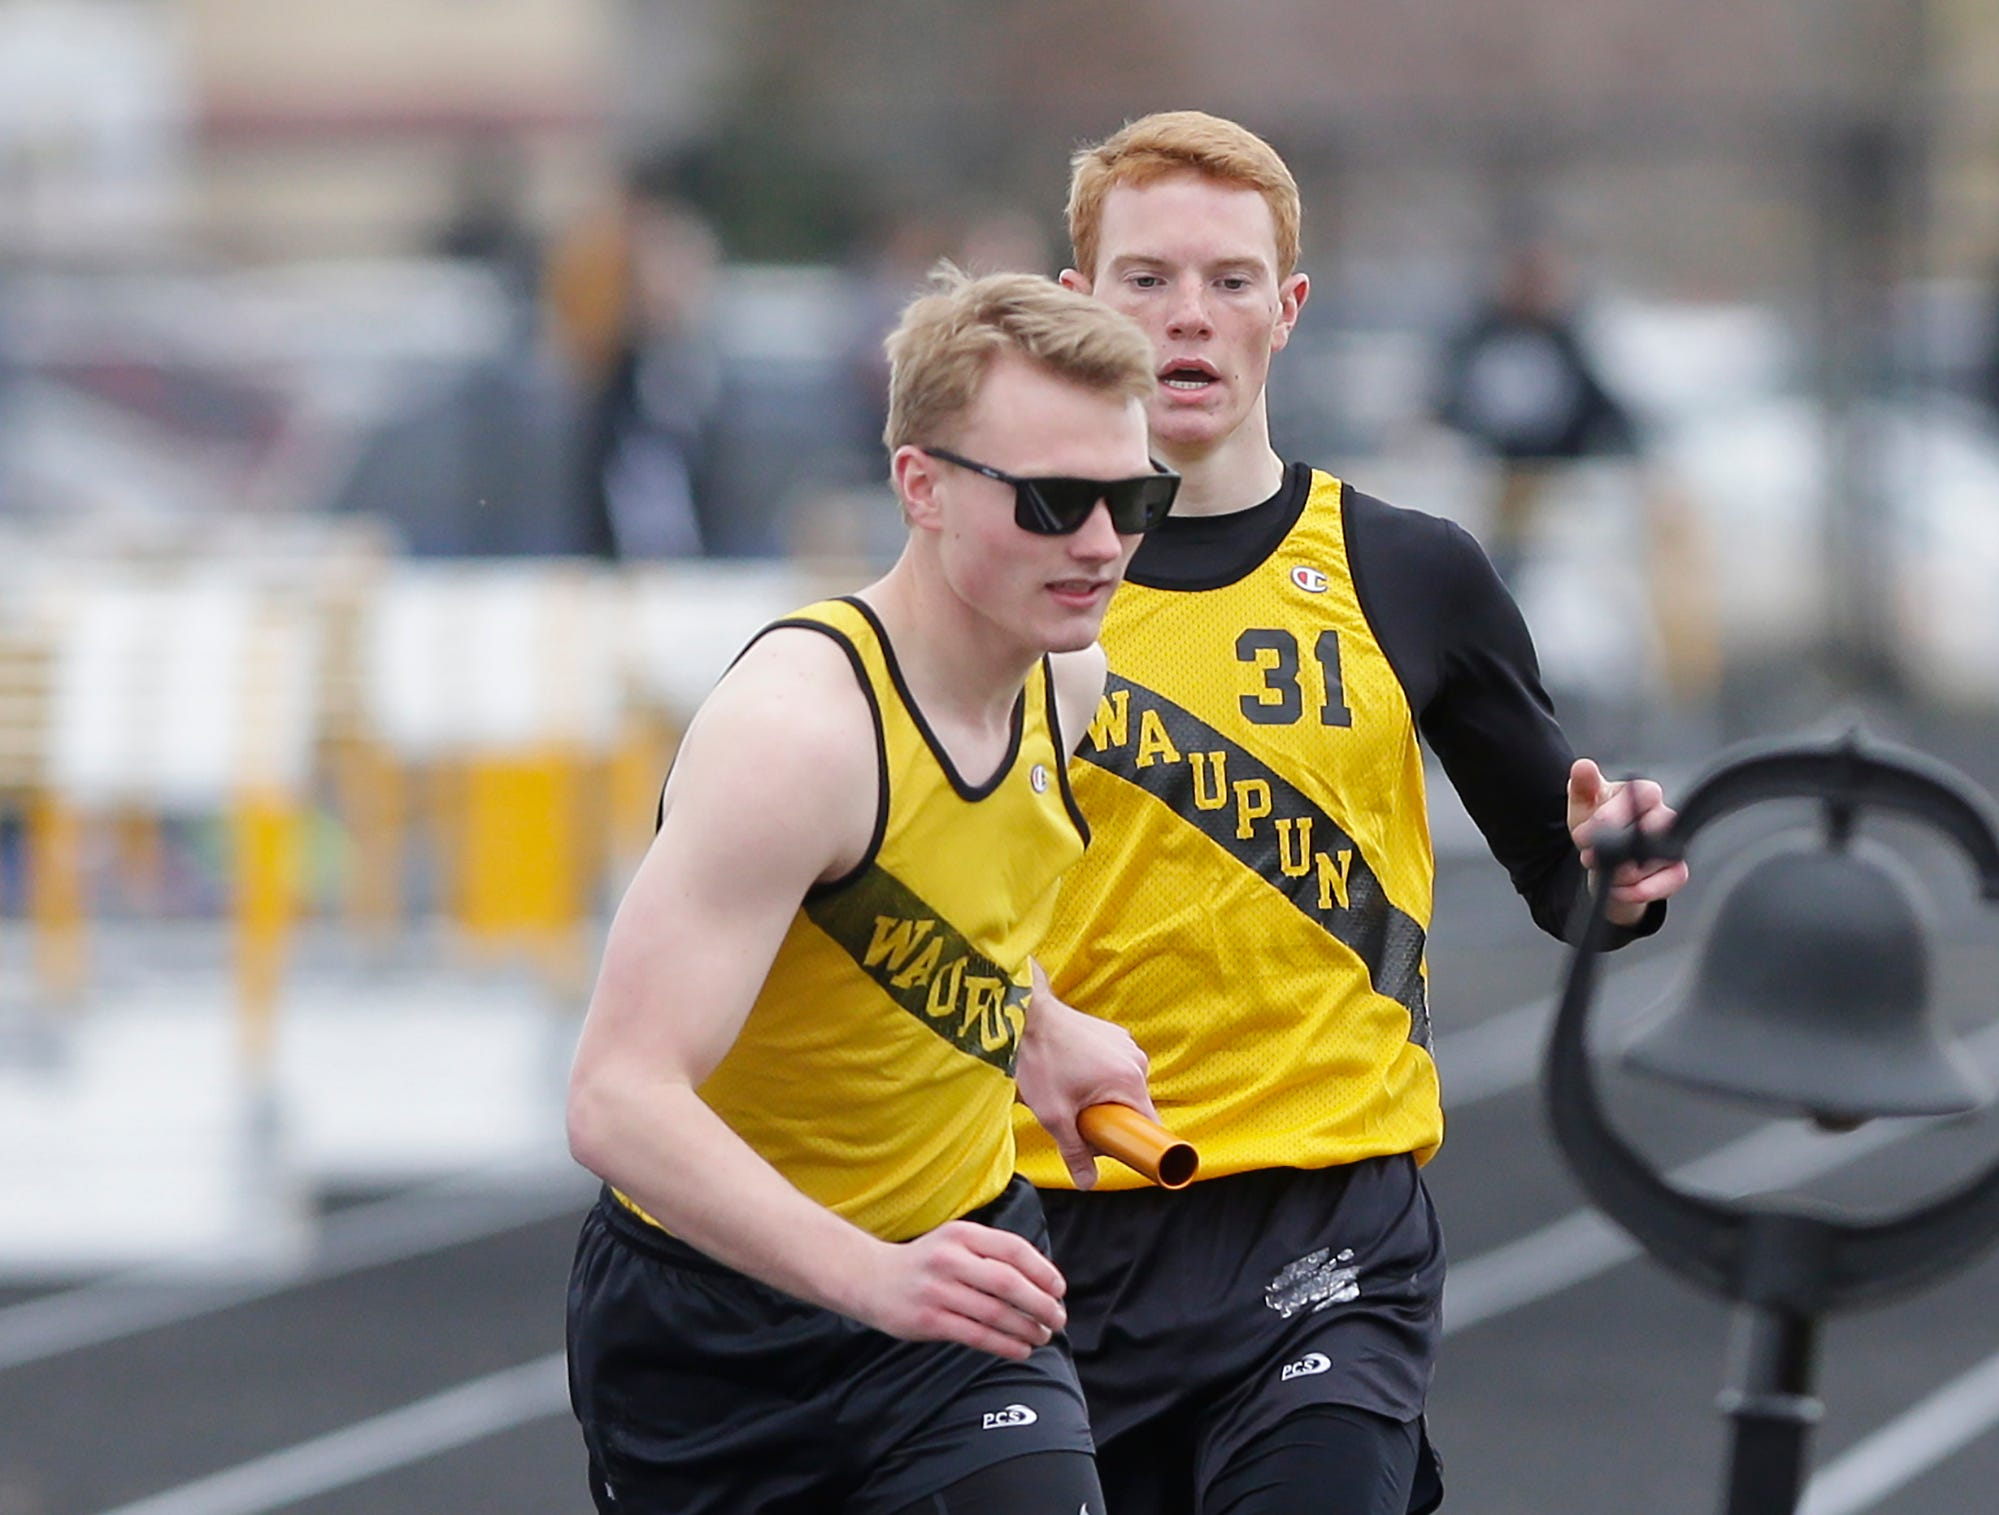 Kanon Smit of Waupun High School grabs the baton from Rhyer Smit in the 4x800 meter relay Friday, May 3, 2019 at the Waupun High School Invitational track and field meet. Doug Raflik/USA TODAY NETWORK-Wisconsin